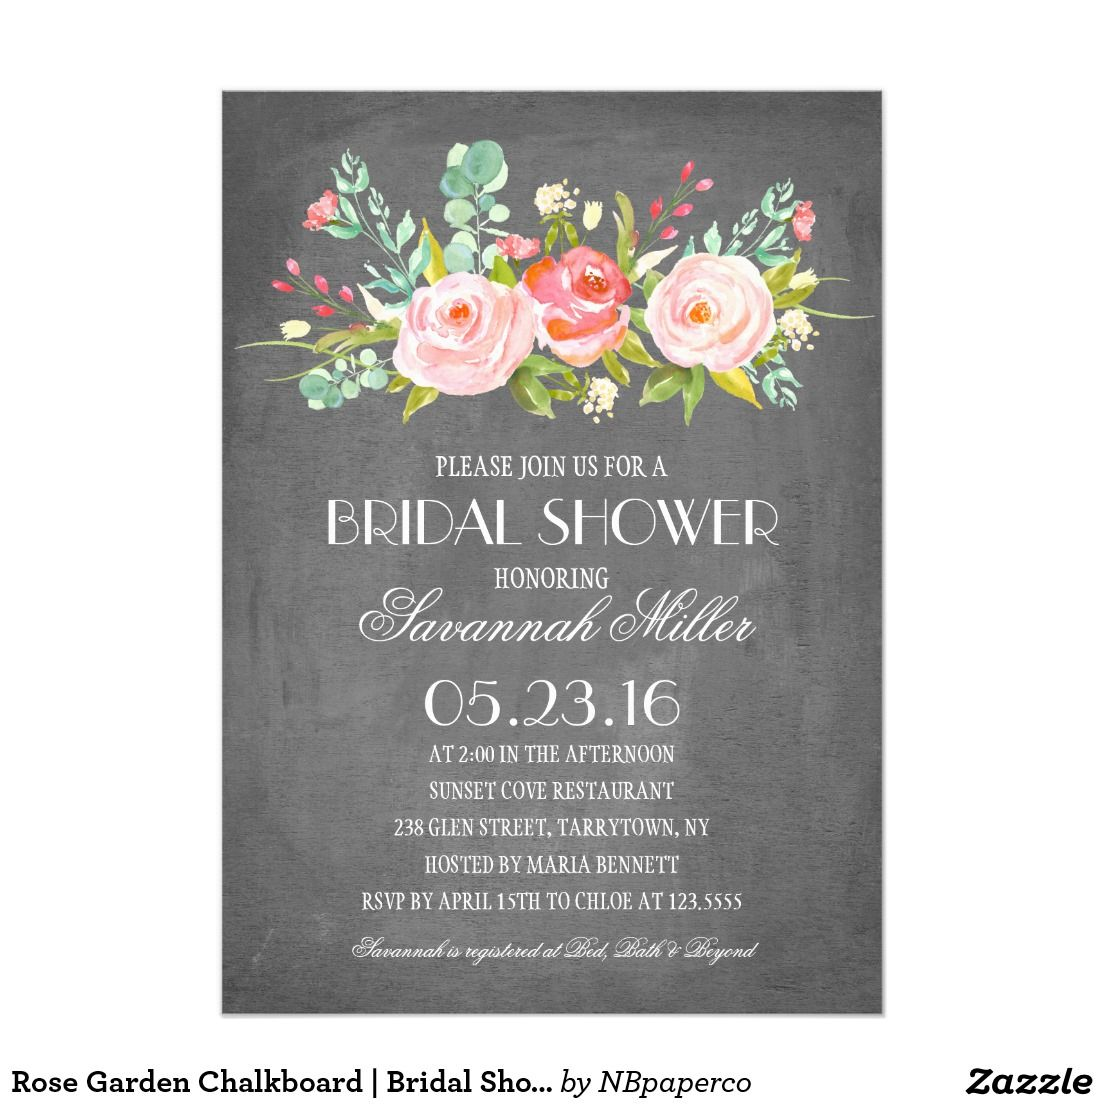 Rose Garden Chalkboard | Bridal Shower Invitation | Pinterest ...